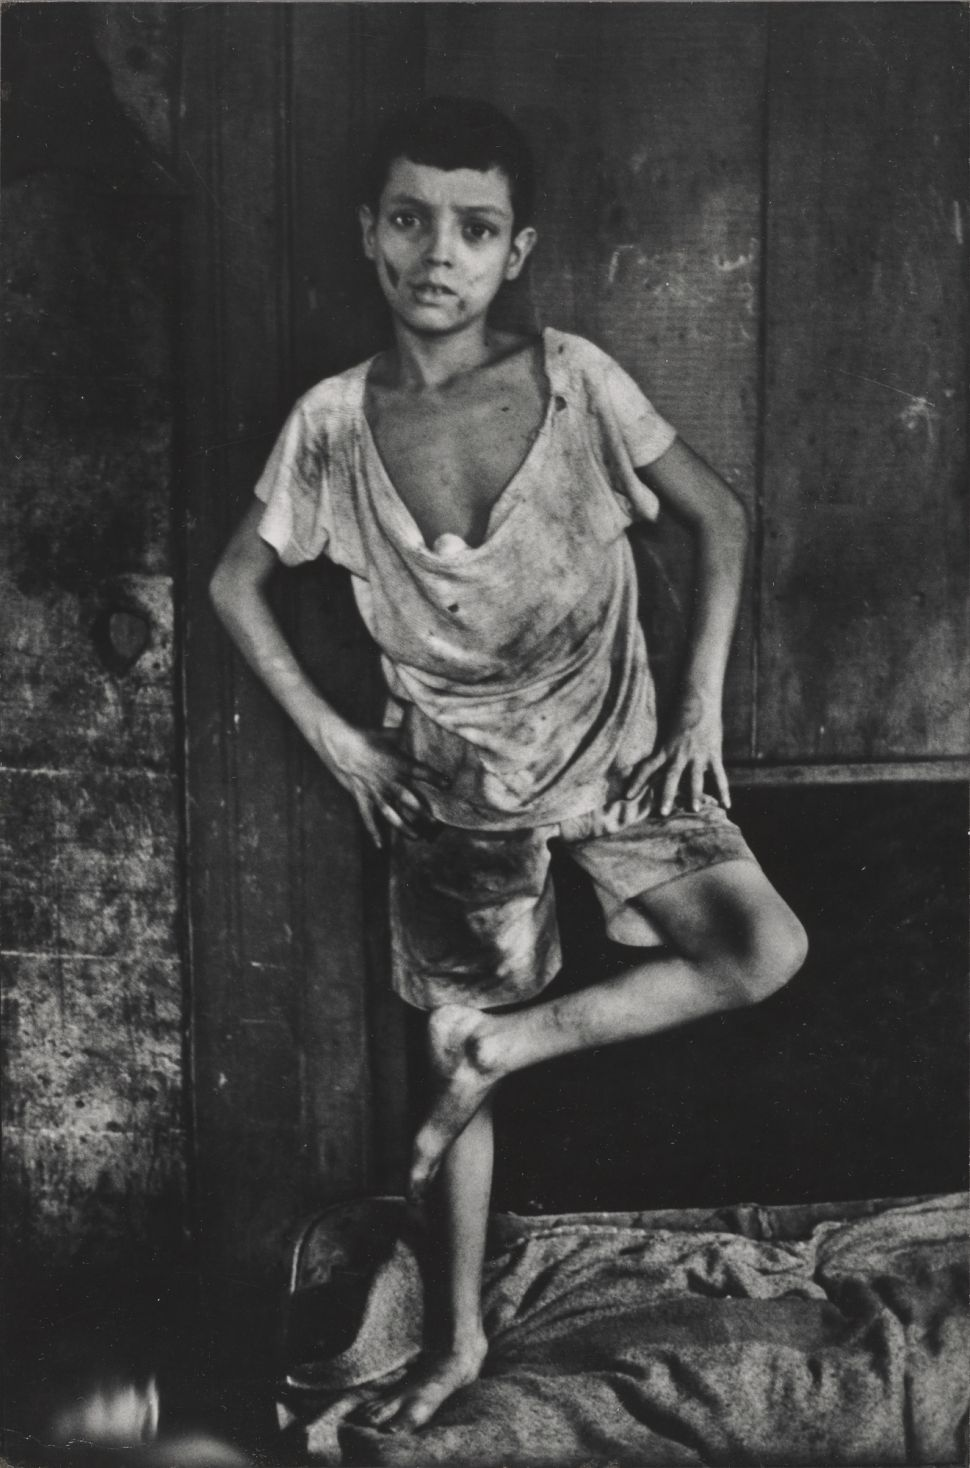 Looking Back at the Images of Poverty that Sparked a Firestorm in the 1960s